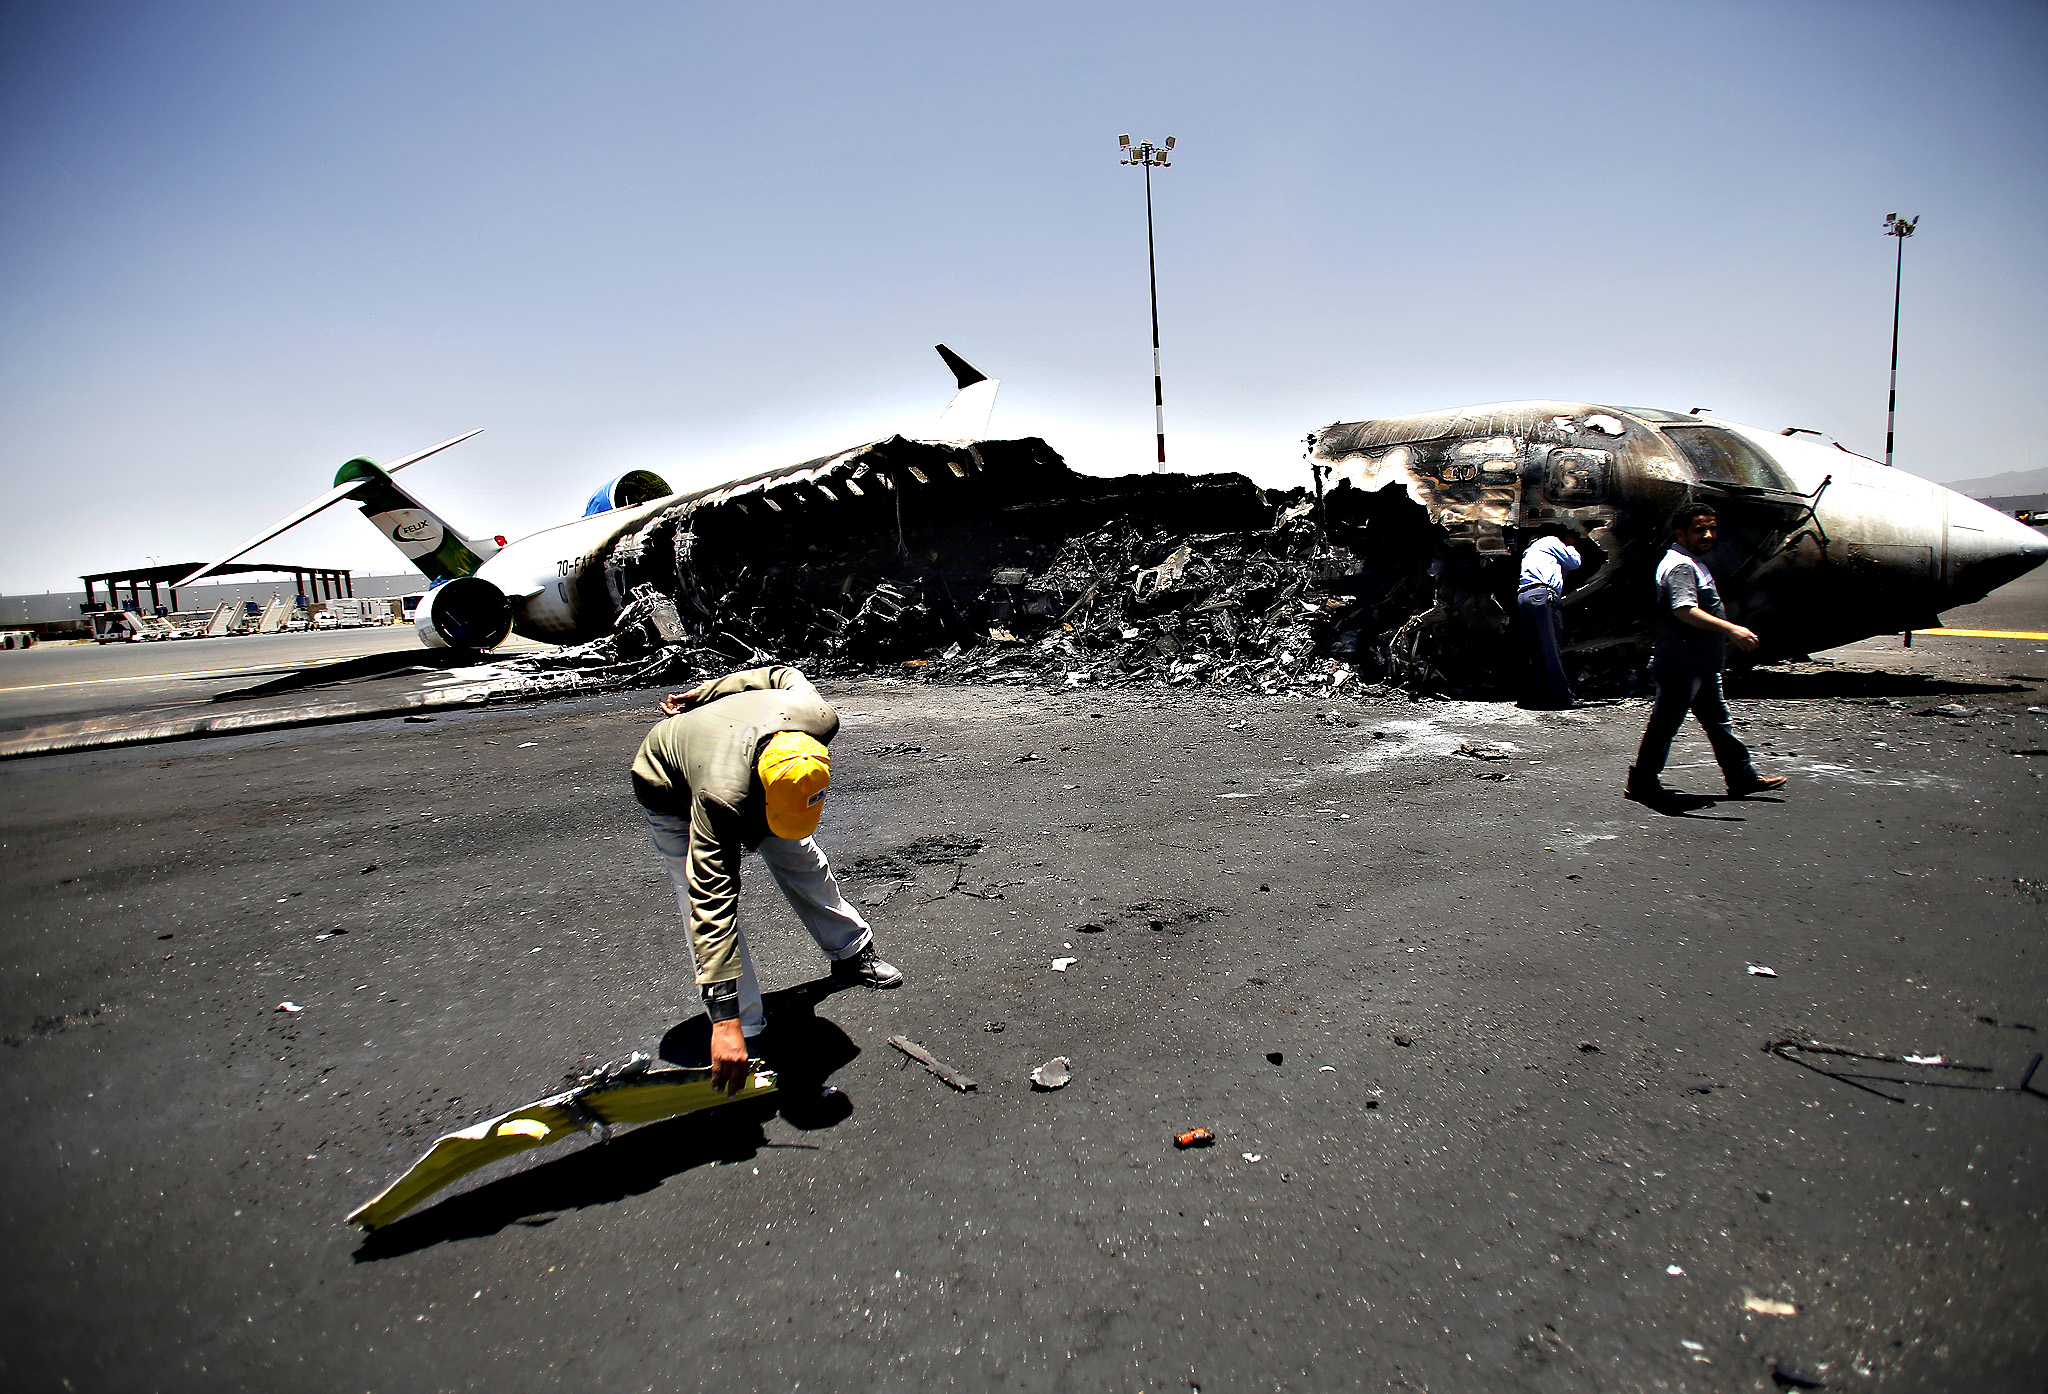 Officials of Felix Airways, a domestic airline, inspect a plane destroyed by Saudi-led airstrikes, at the Sanaa International airport, in Yemen, Wednesday, April 29, 2015. Saudi-led coalition warplanes pounded Shiite rebels and their allies overnight and throughout the day on Tuesday in the Yemeni capital. Around midday, airstrikes hit Sanaa International airport, setting a plane owned by a private company on fire, according to a statement released by the Shiite rebels, known as Houthis